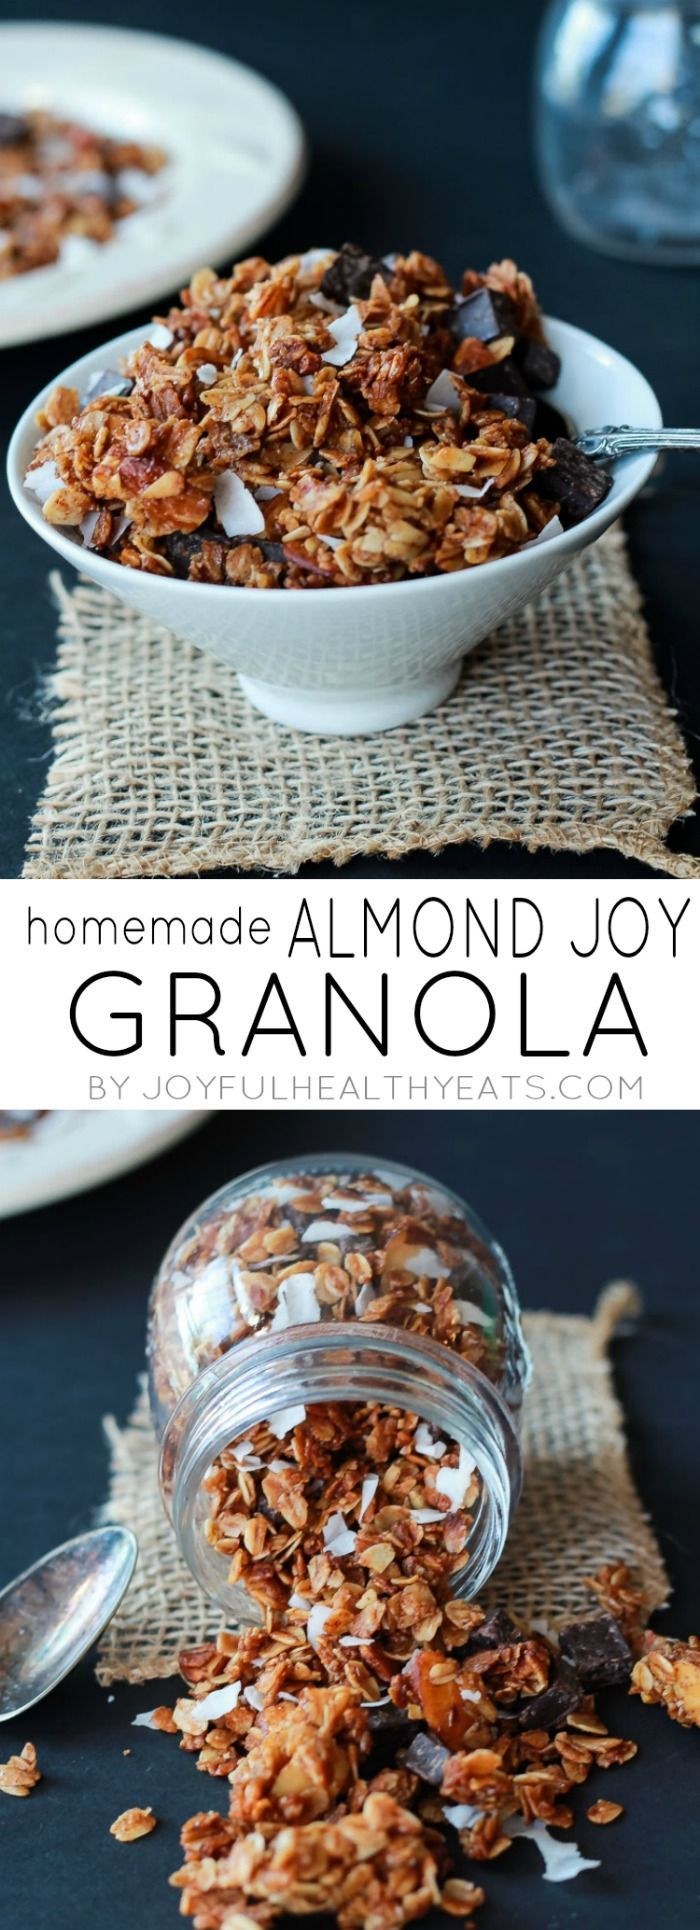 The Best Homemade Almond Joy Granola made in just 30 minutes! This stuff is like candy its so addicting. From the dark chocolate chunks, to the coconut flakes, and  the cinnamon toasted granola. You need this recipe! | joyfulhealthyeats.com #recipes